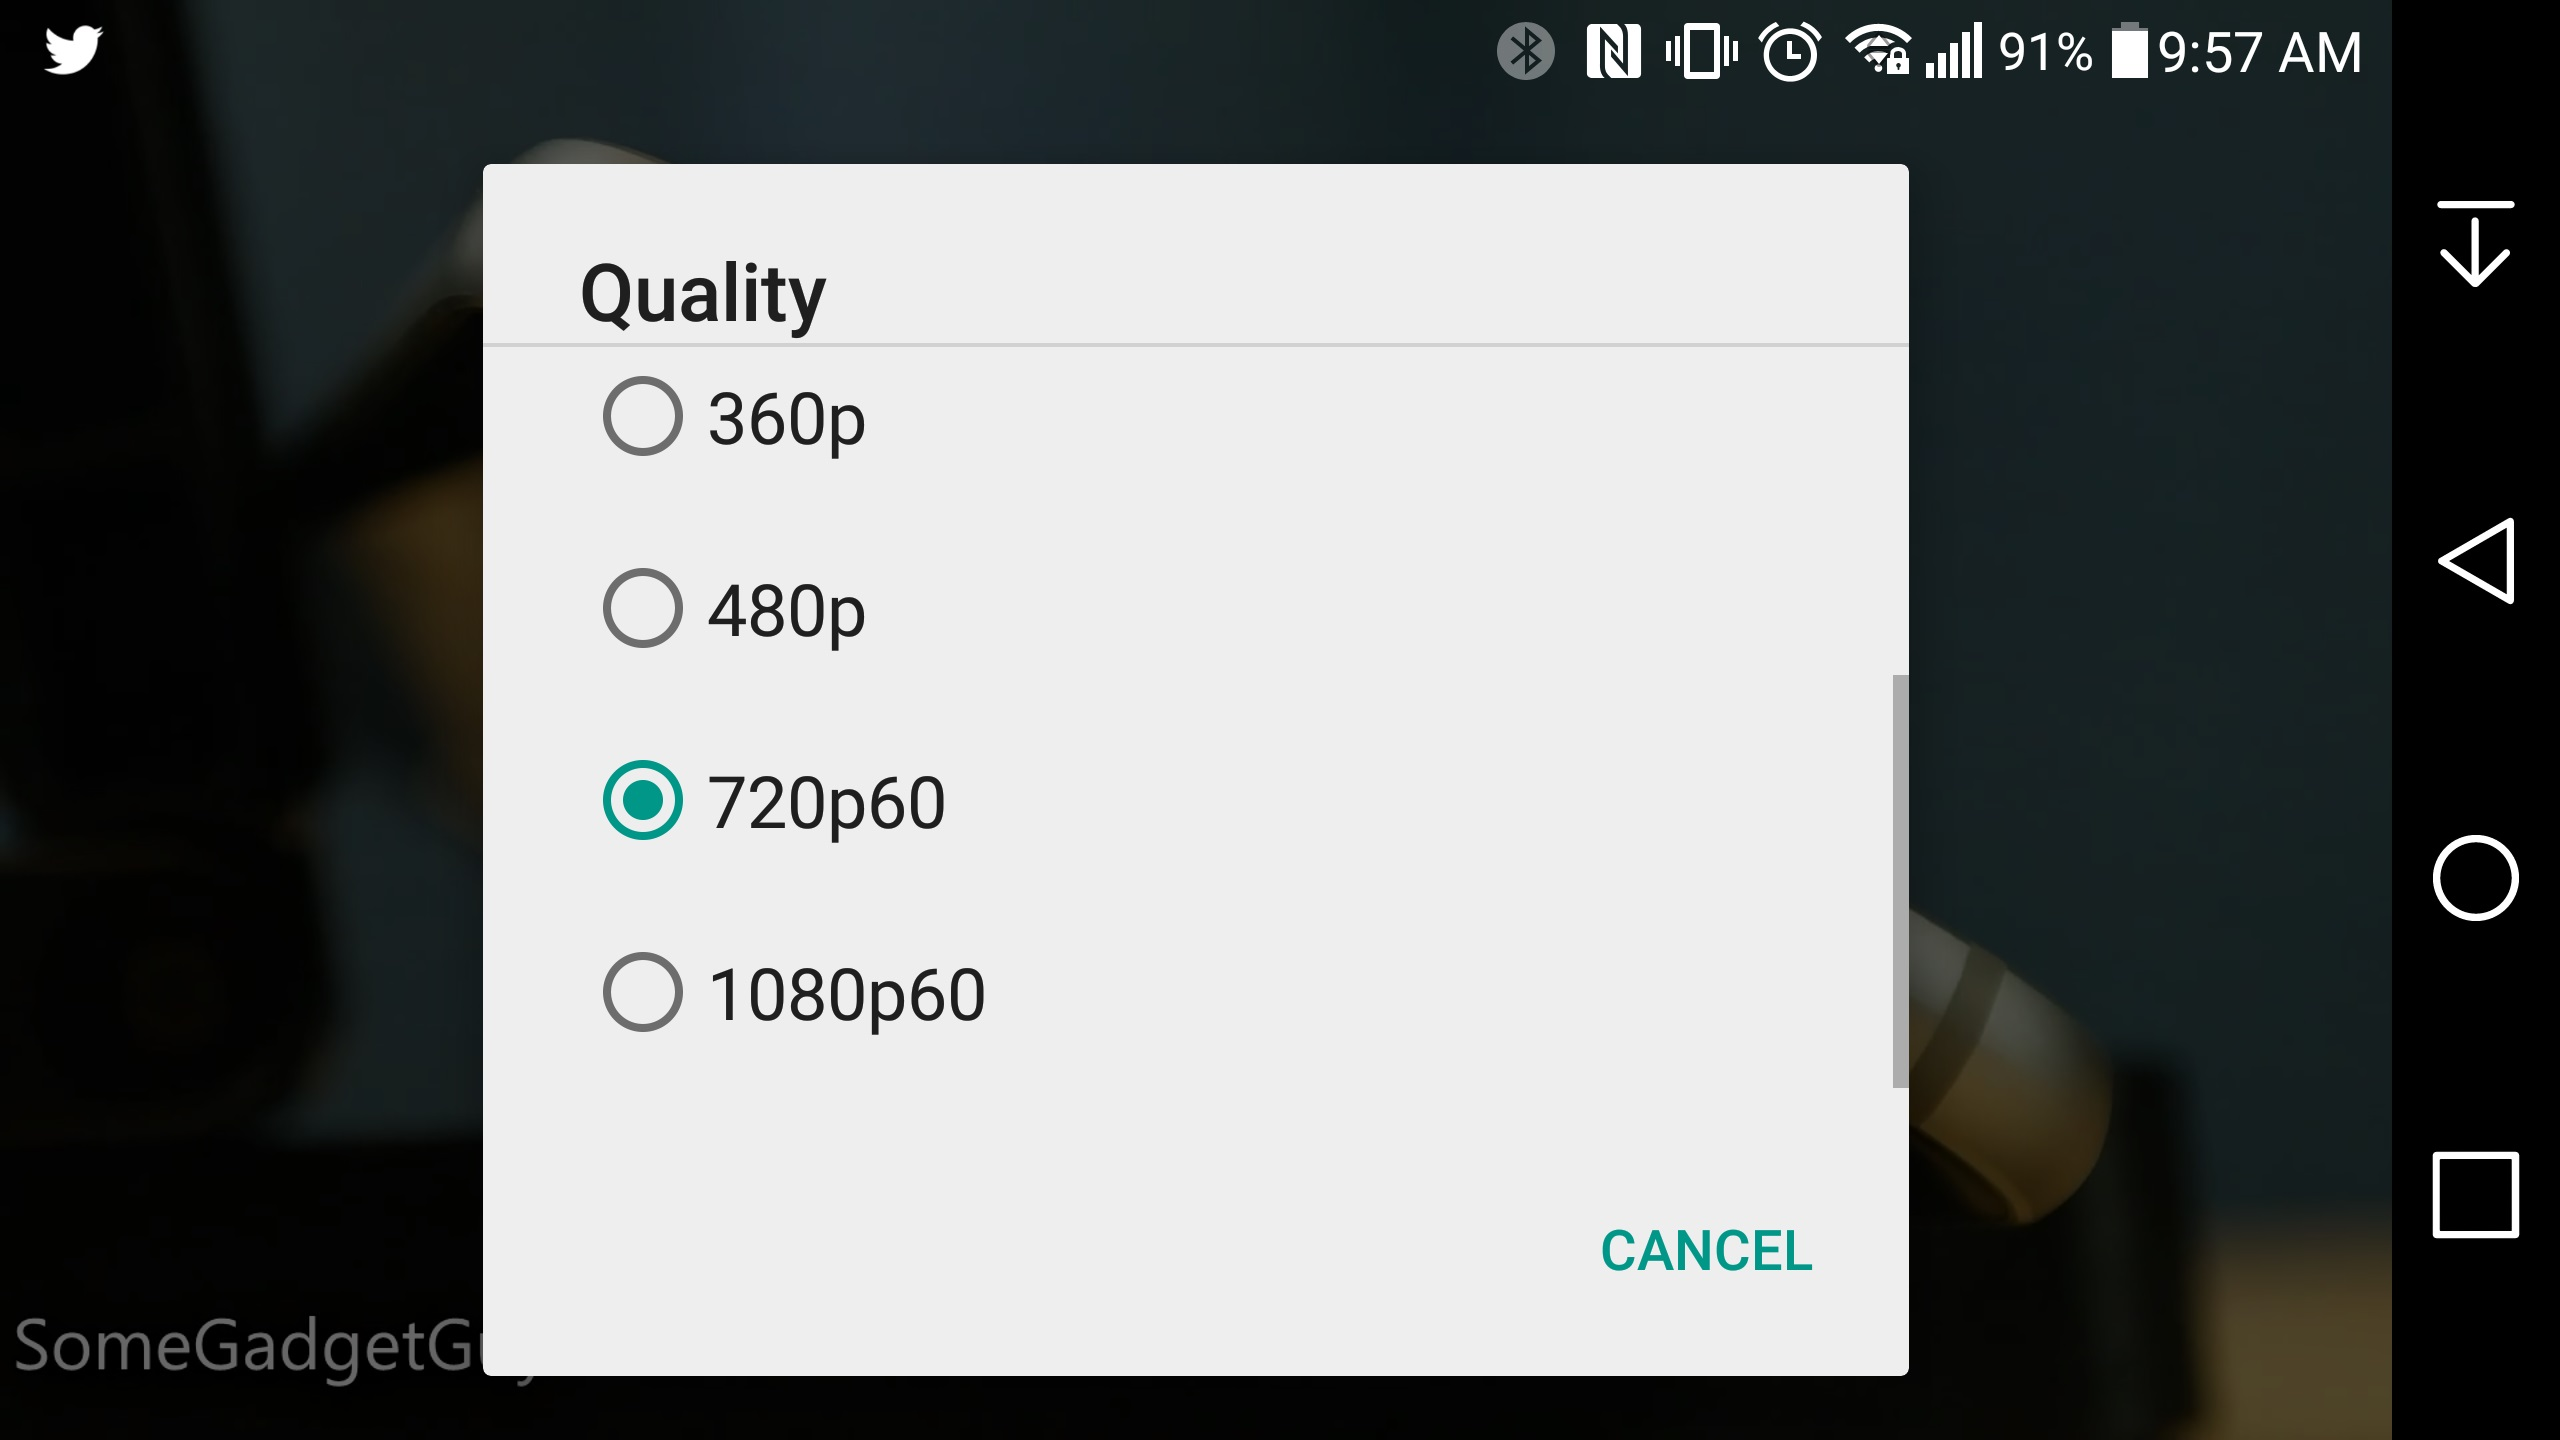 Youtube Rolling Out 60 FPS Playback on Android & iOS Apps